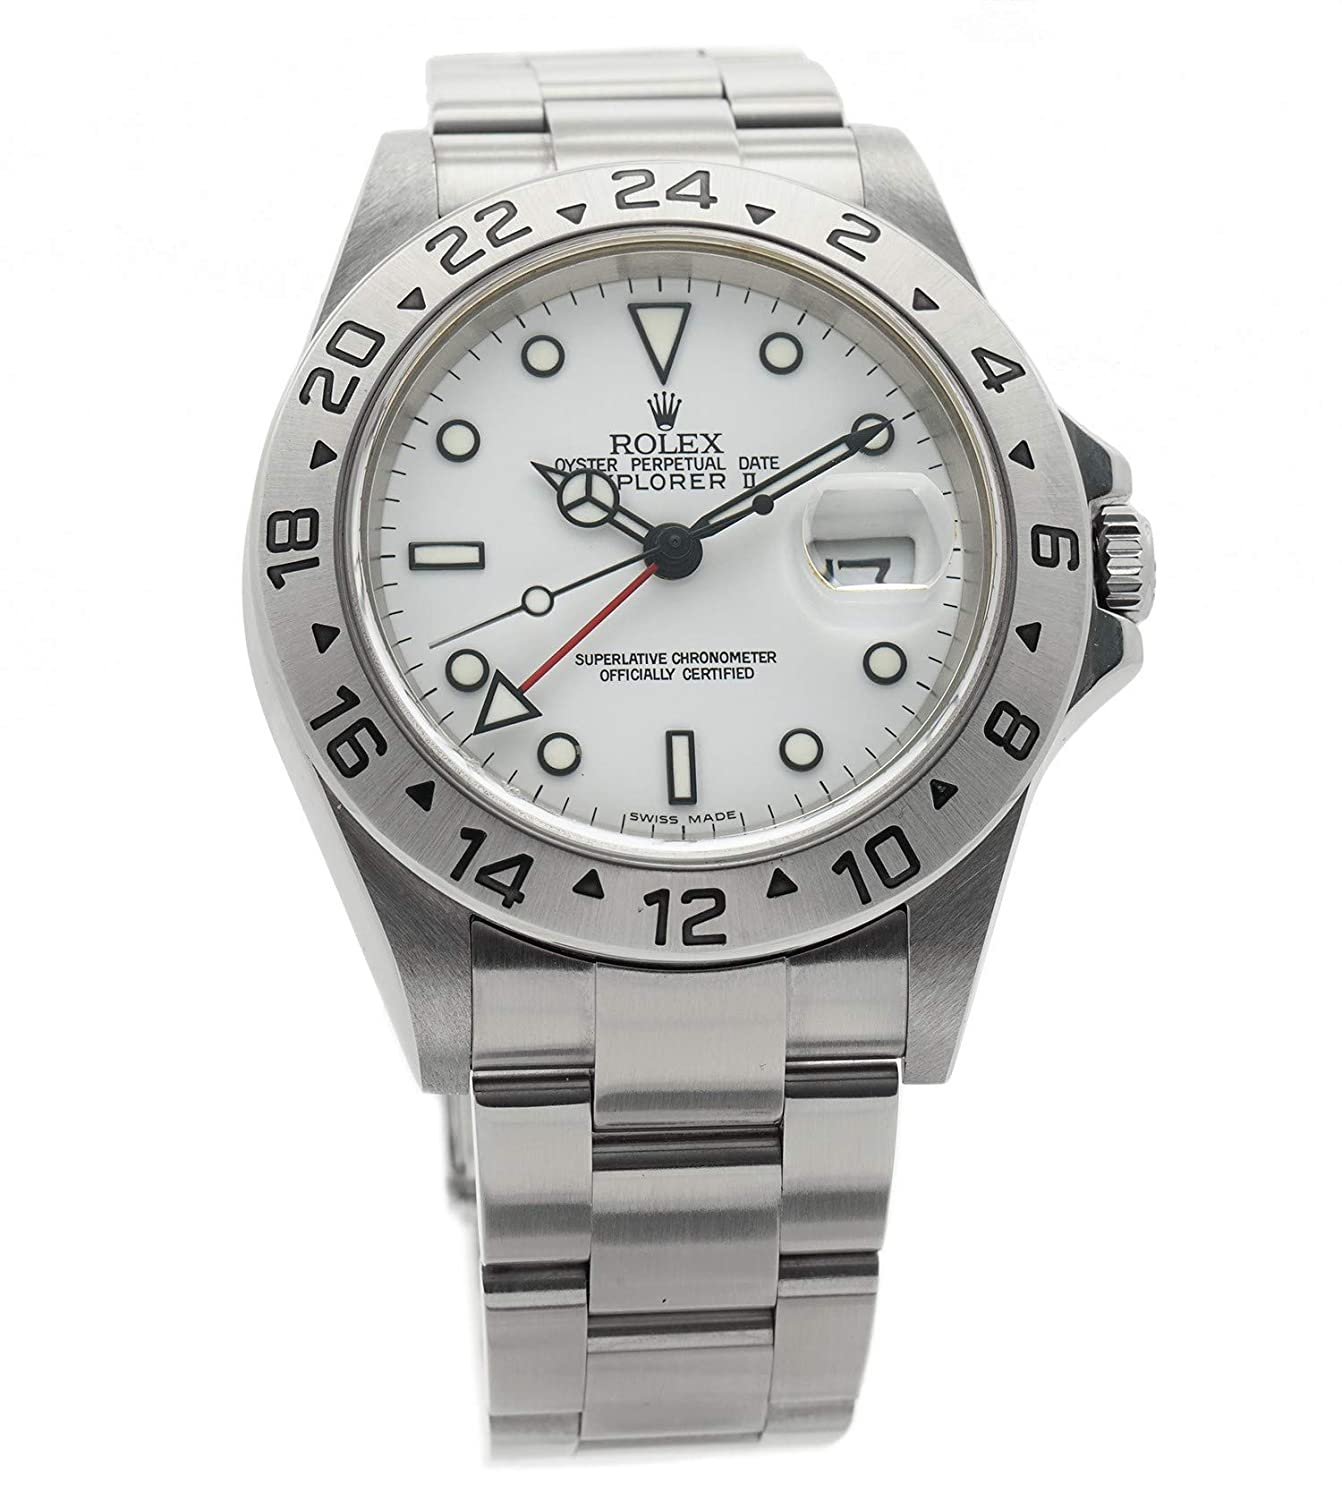 c06ee6029b5 Amazon.com  Rolex Explorer II Automatic-self-Wind Male Watch 16570  (Certified Pre-Owned)  Rolex  Watches